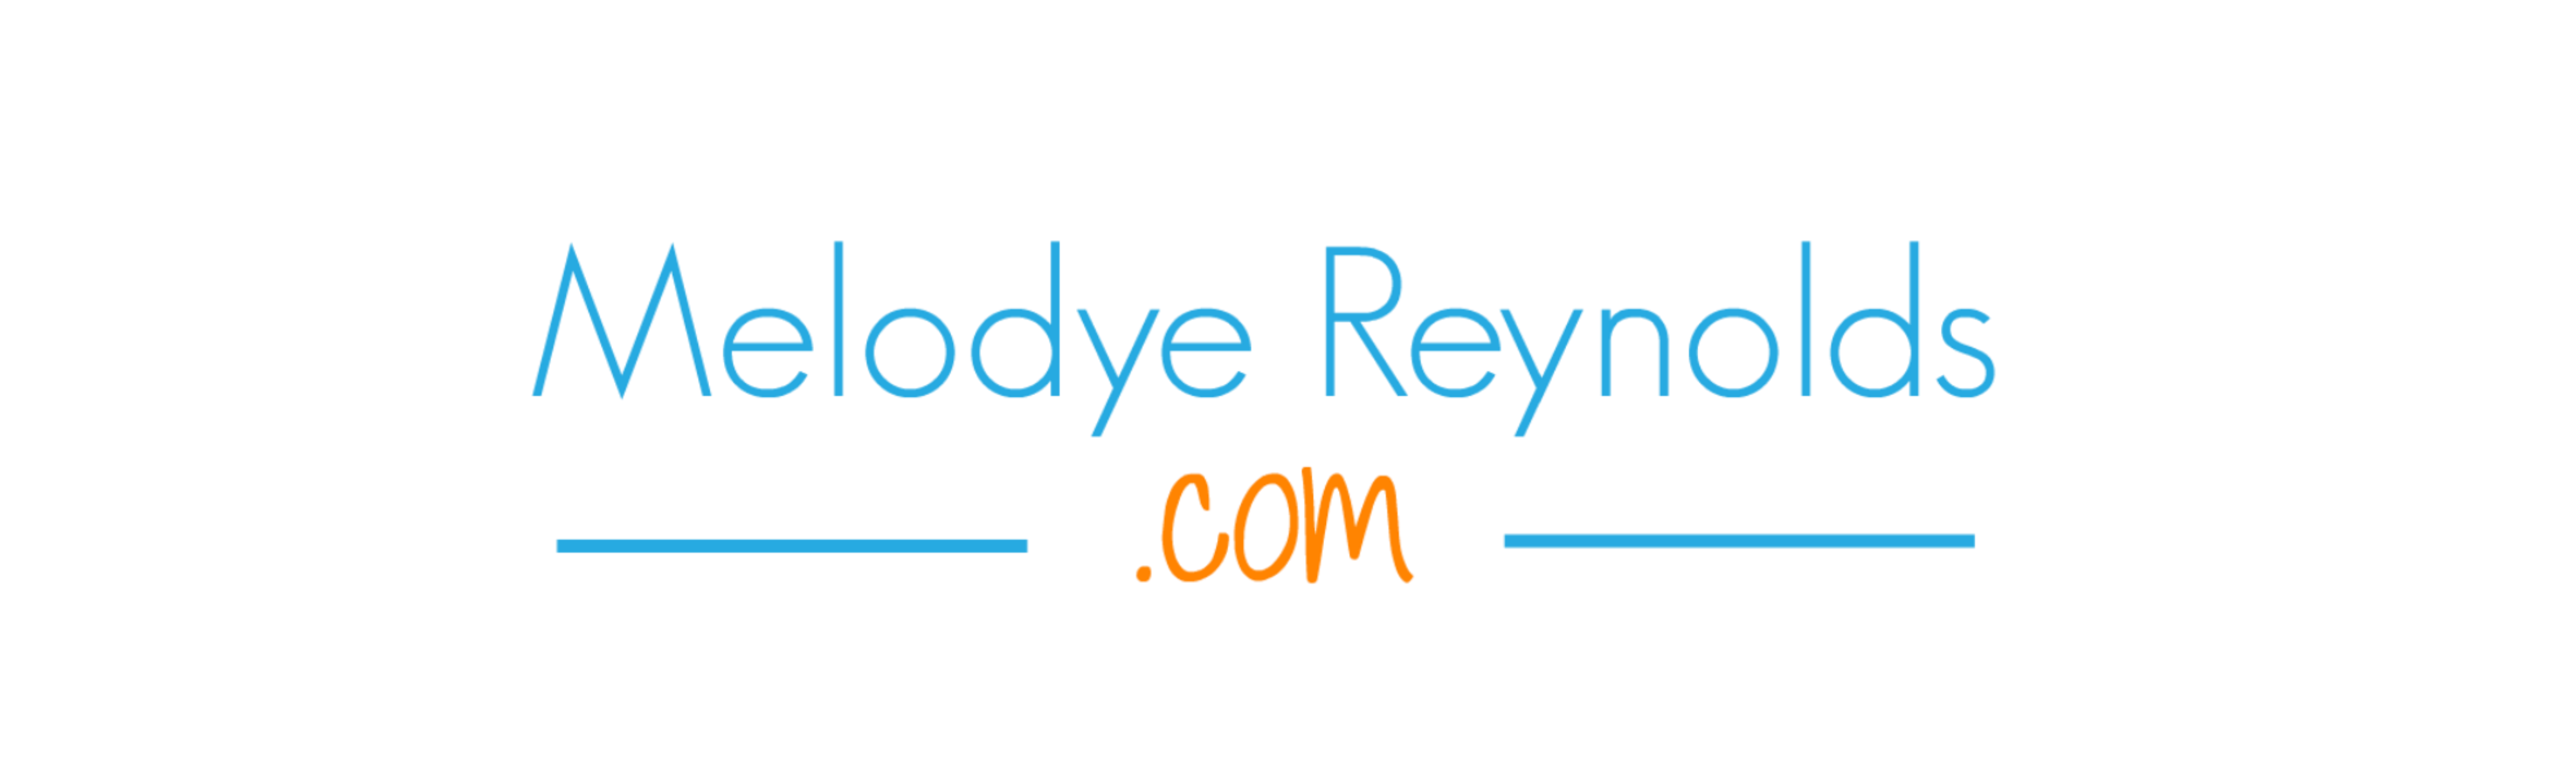 Melodye Reynolds | Bible Study Tips | Bible Study | minimalism | essential oils | how to use essential oils | how to simplify your life | overwhelmed women | personal development | intentional living | Melodye Reynolds